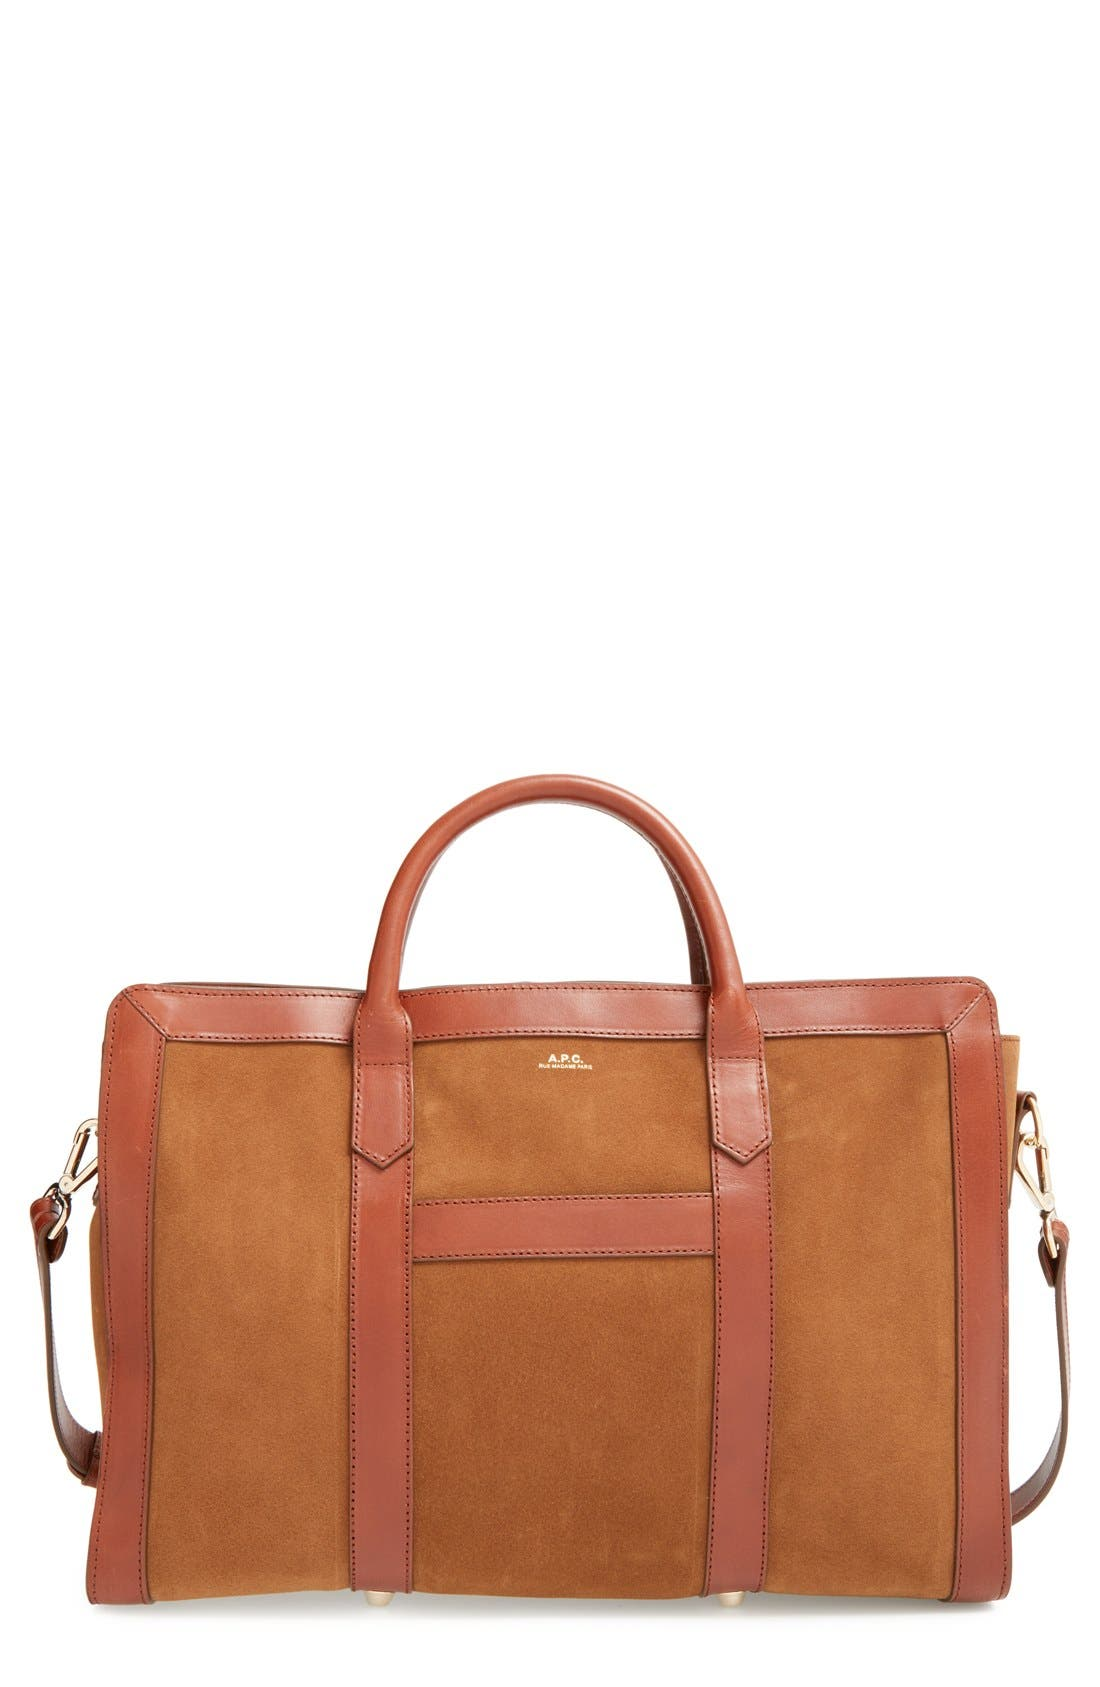 Alternate Image 1 Selected - A.P.C. 'Lydia' Leather & Suede Satchel